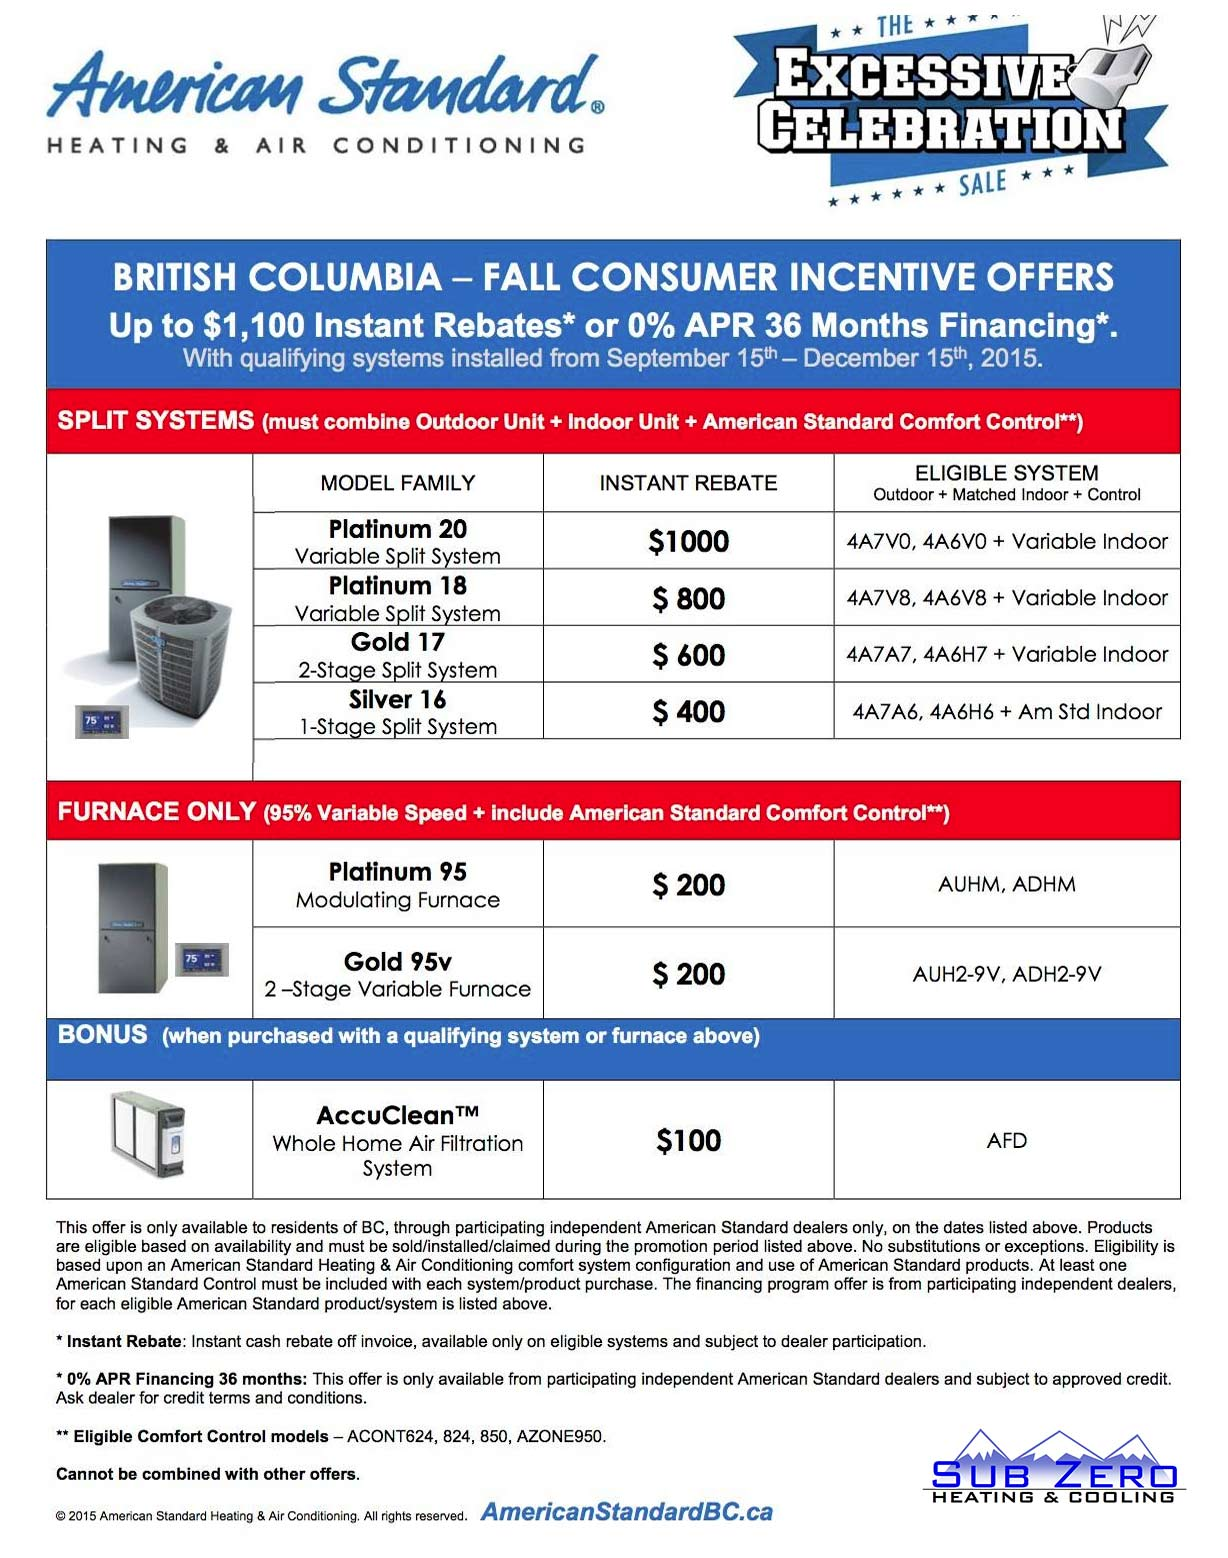 American Standard Rebates Sub Zero Heating And Cooling